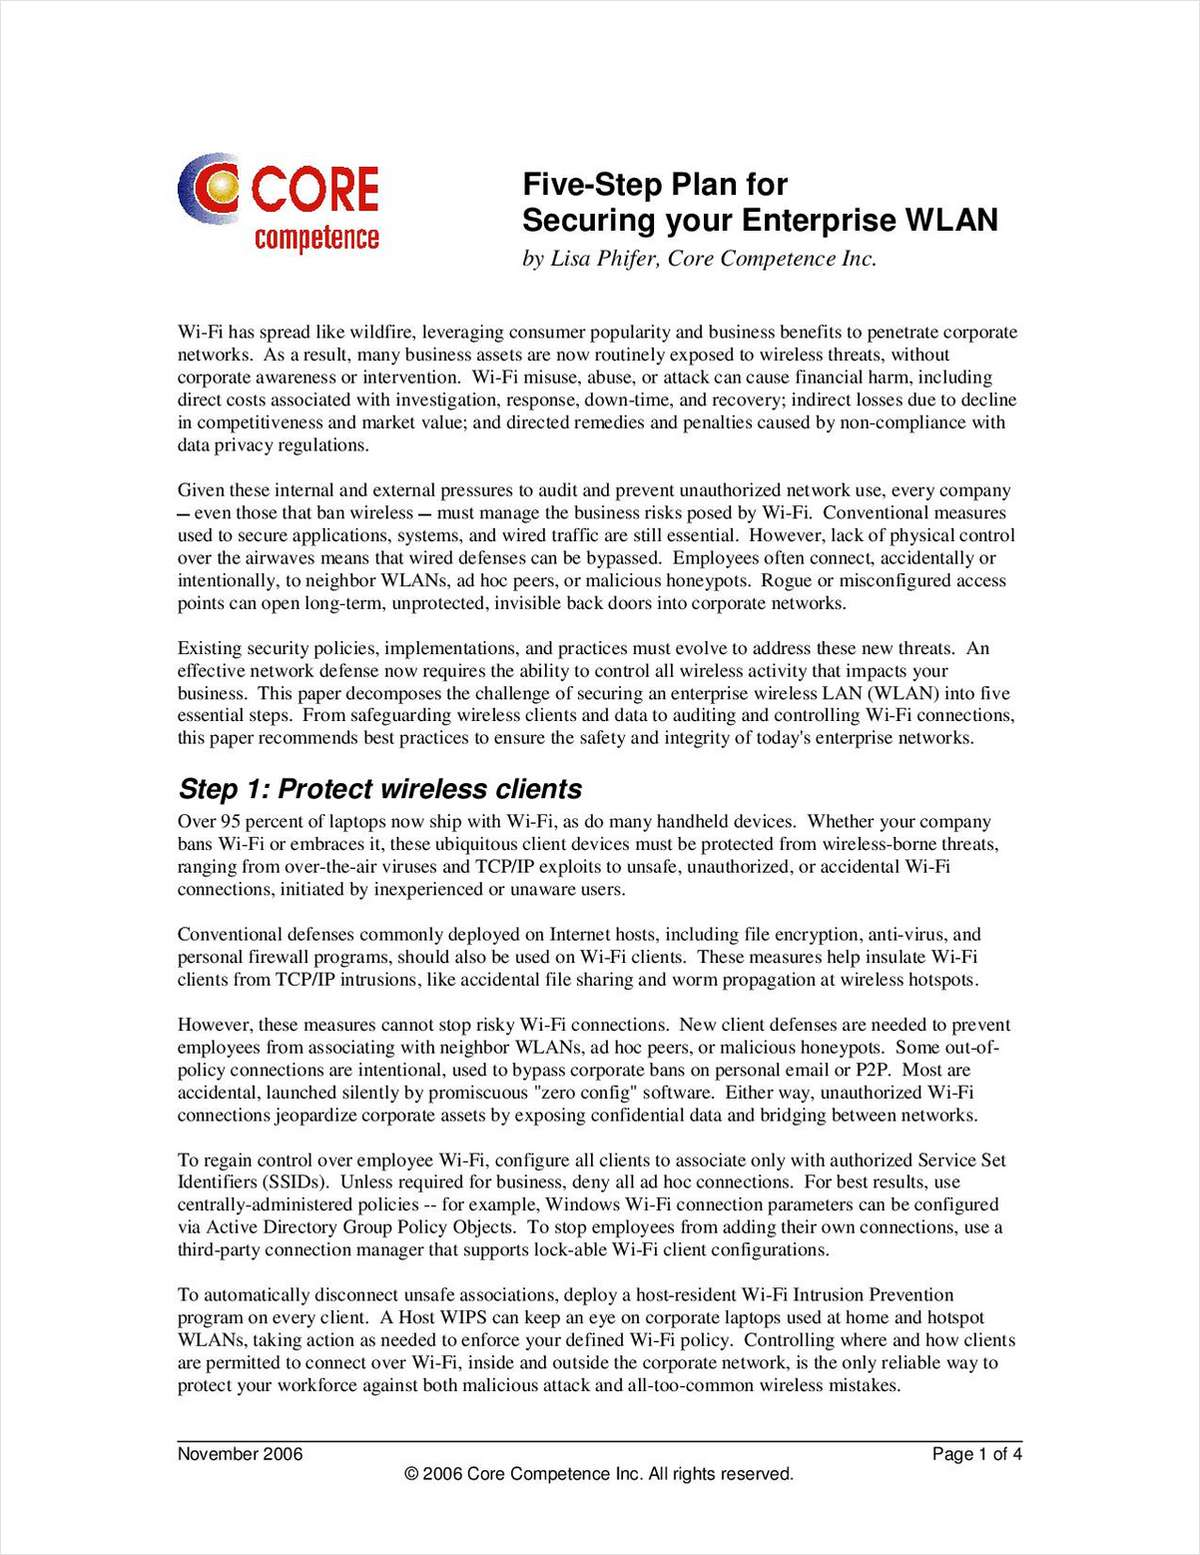 Five-Step Plan for Securing Your Enterprise WLAN